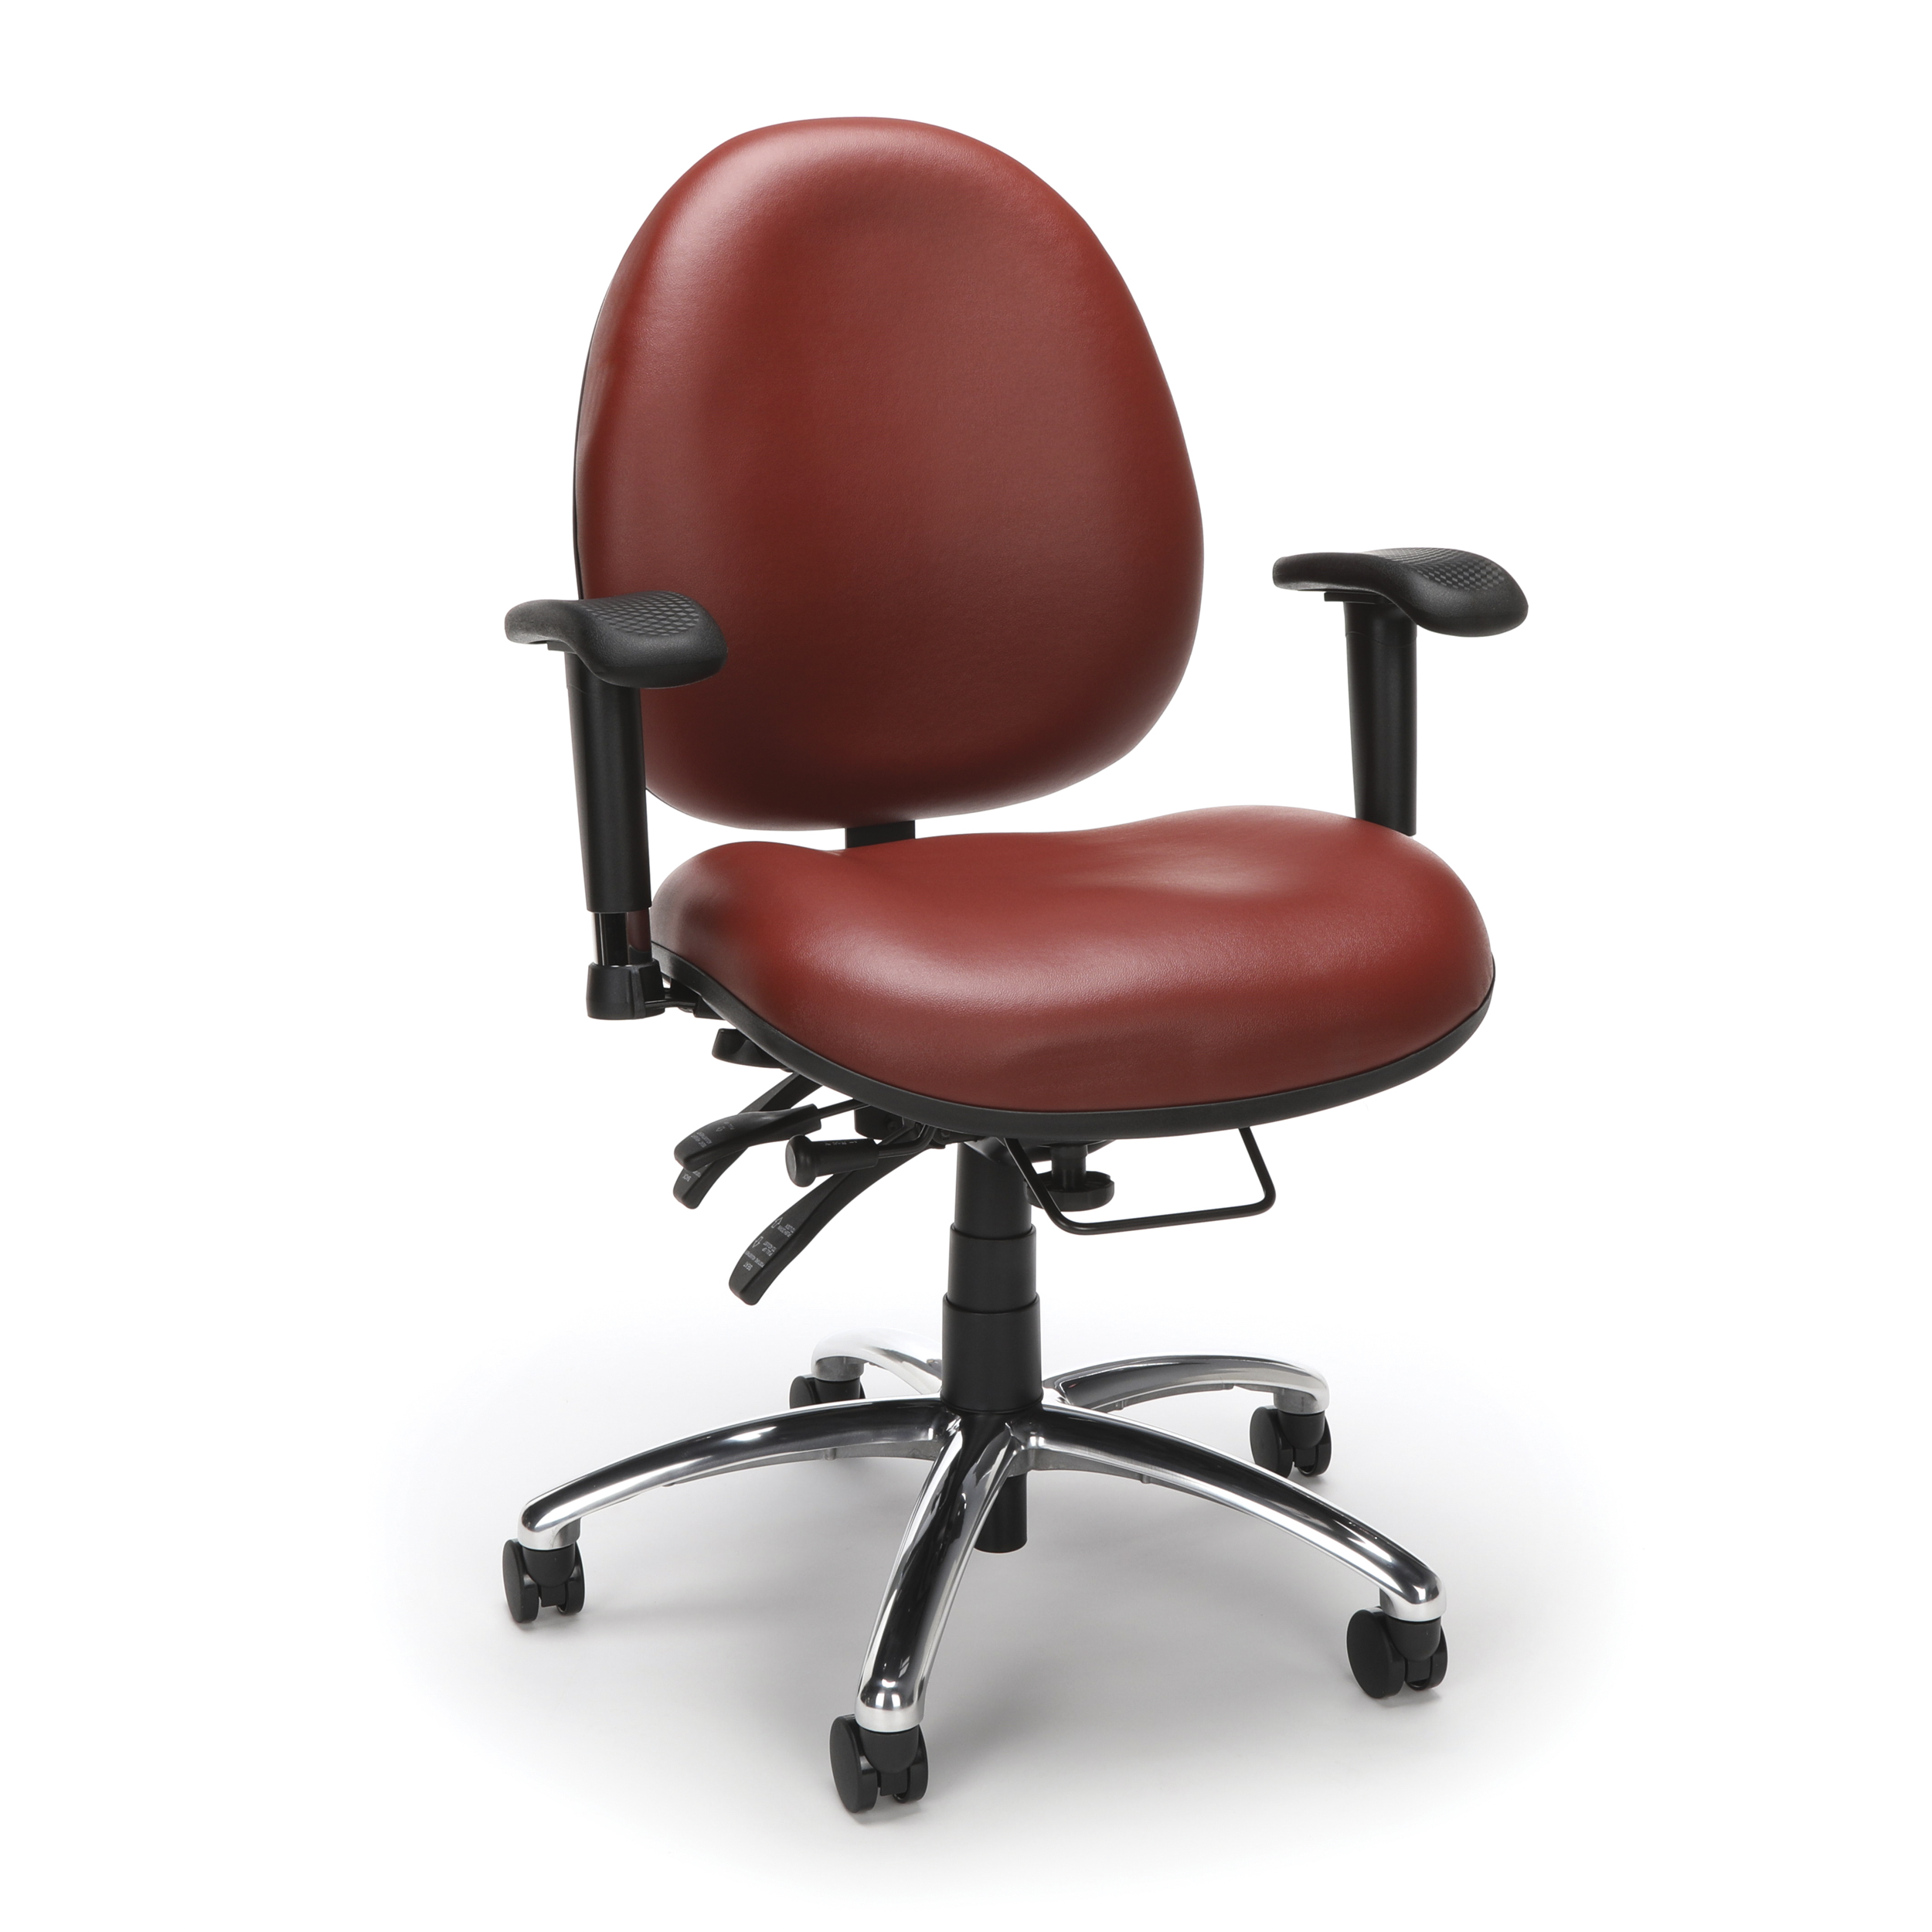 Tall Computer Chair Ofm Model 247 Vam 24 Hour Big And Tall Ergonomic Computer